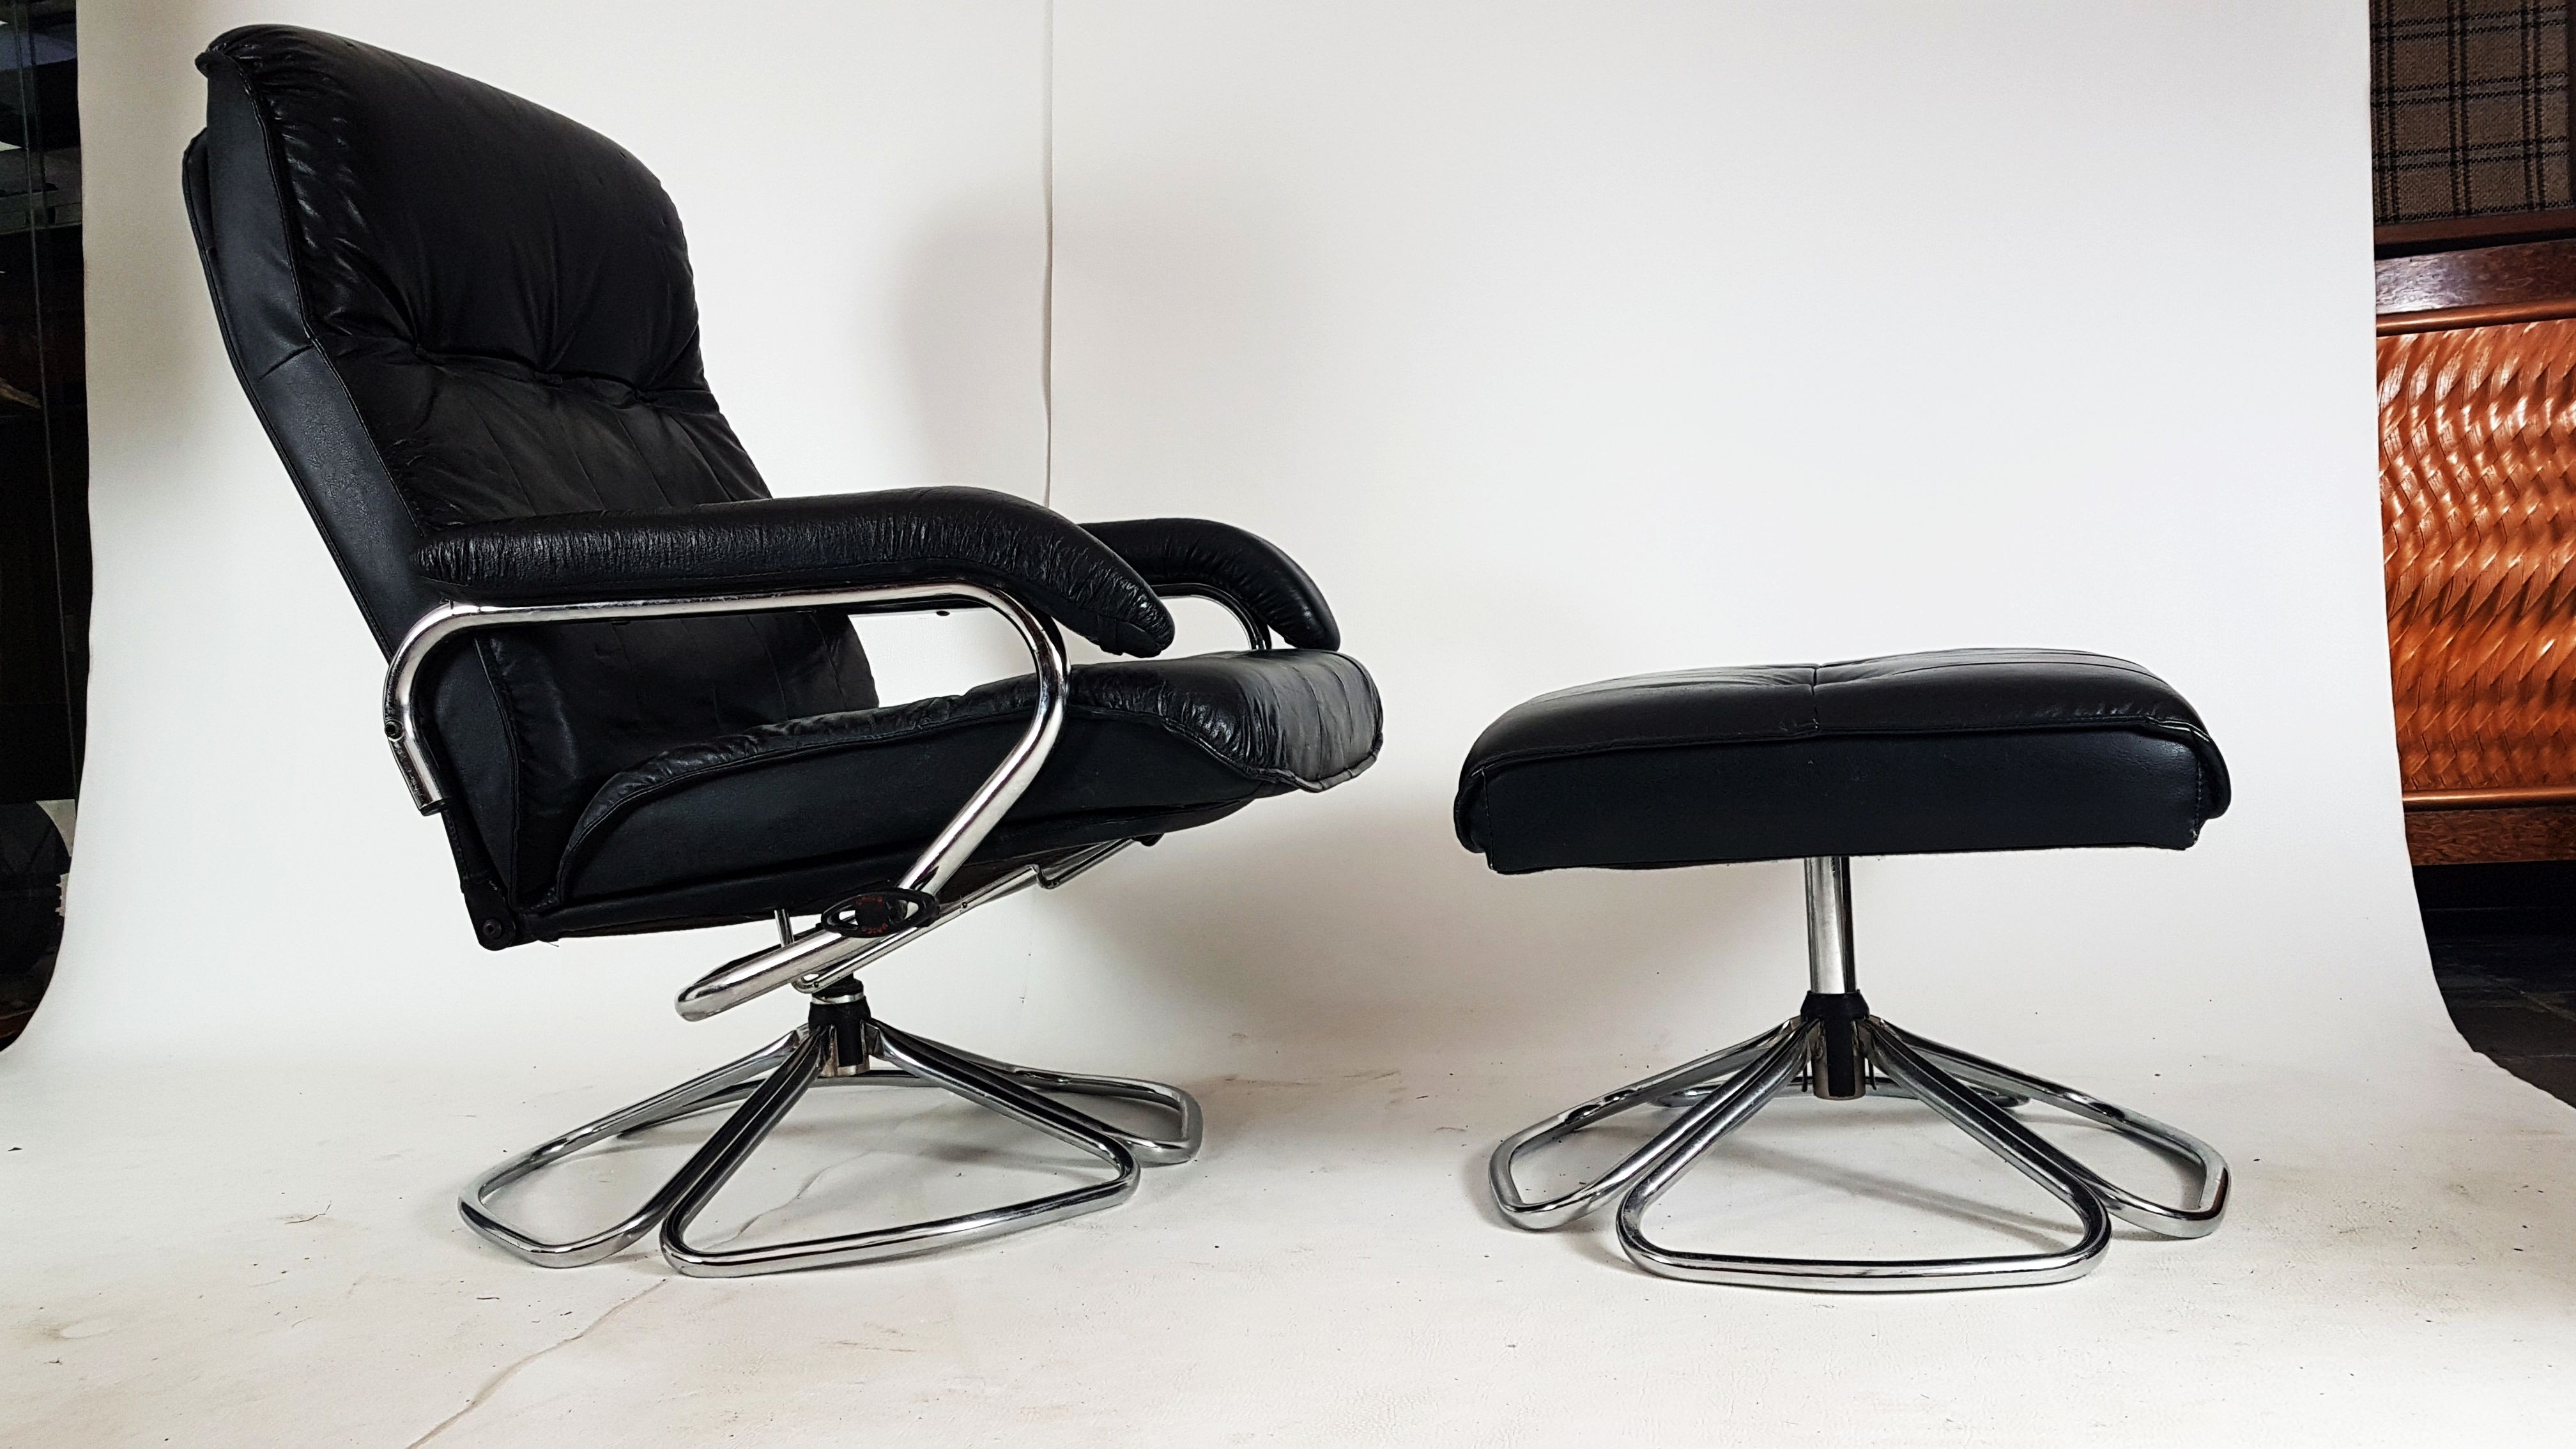 unico office chair. Delighful Chair Unico Office Chair Previous Next Chair I Inside Unico Office Chair